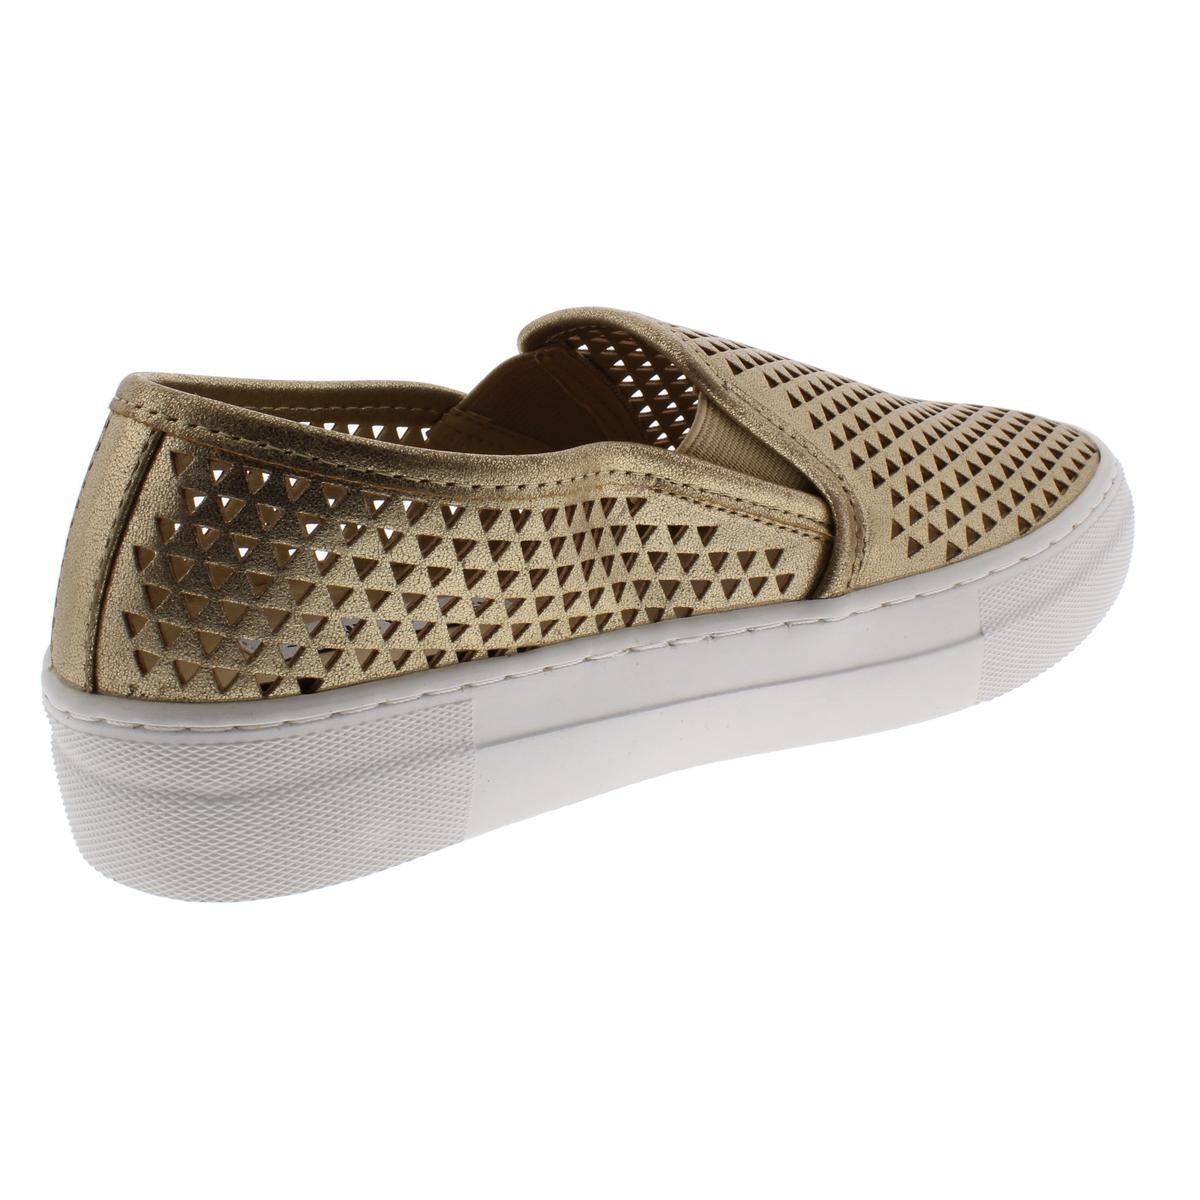 a27c1a71835 Details about Steve Madden Womens Gills Classic Low Top Fashion Loafers  Sneakers BHFO 8263